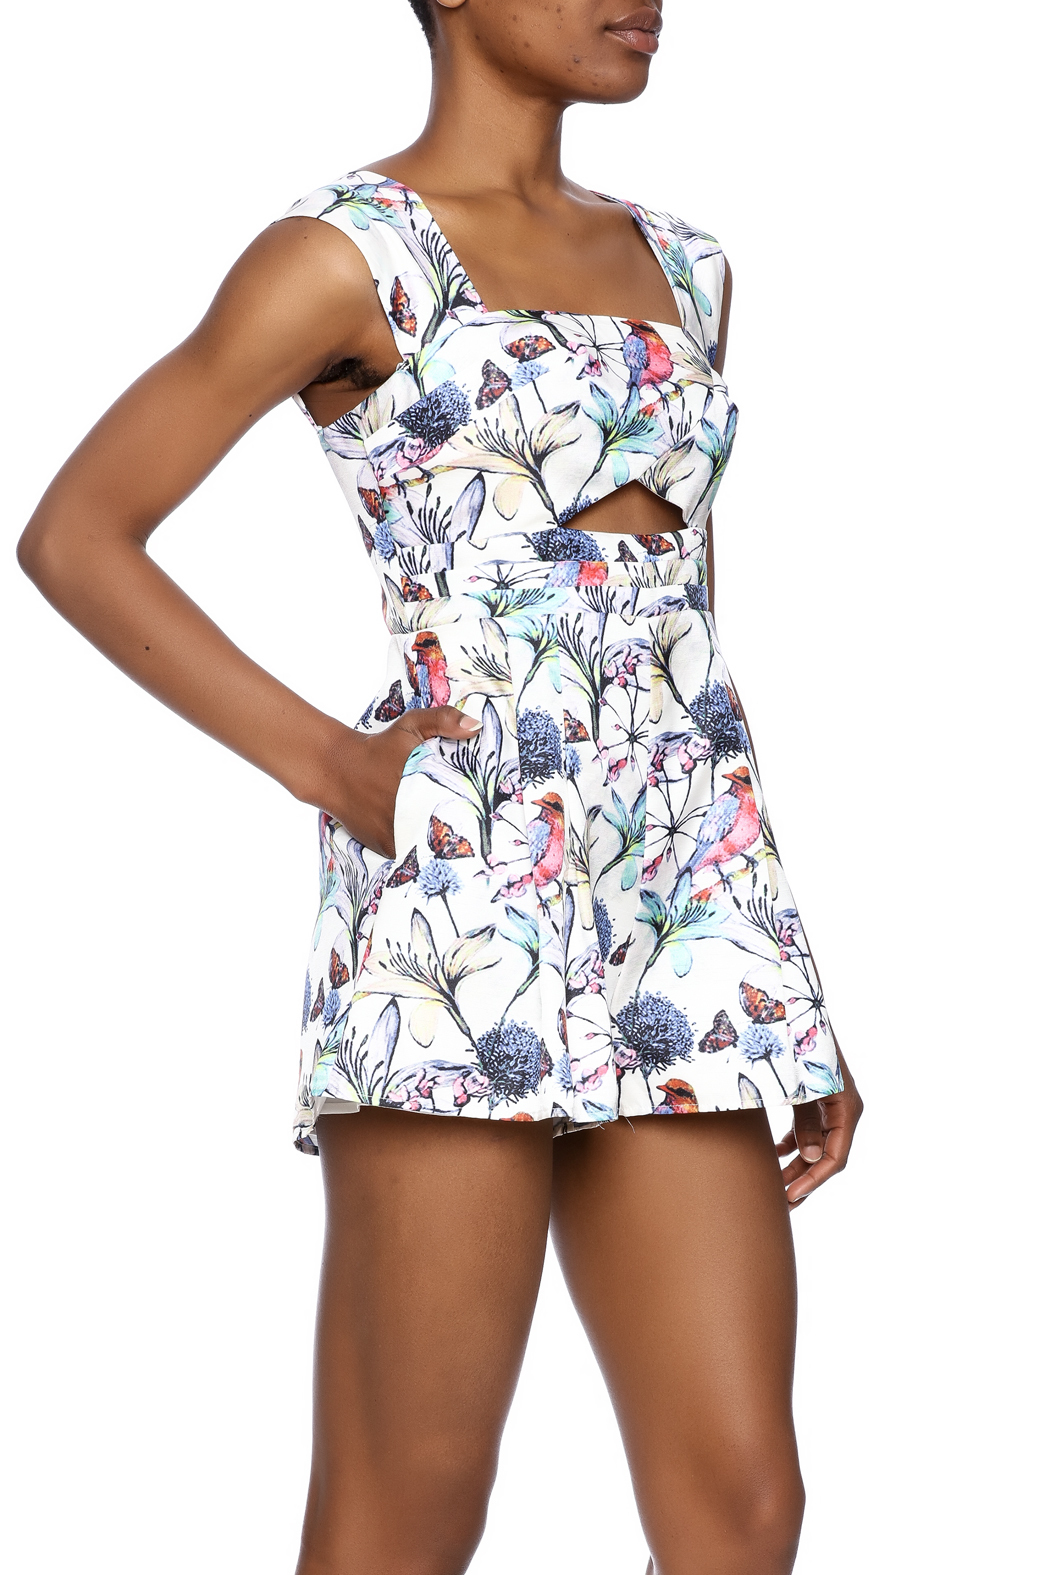 luxxel Justina Floral Romper - Main Image